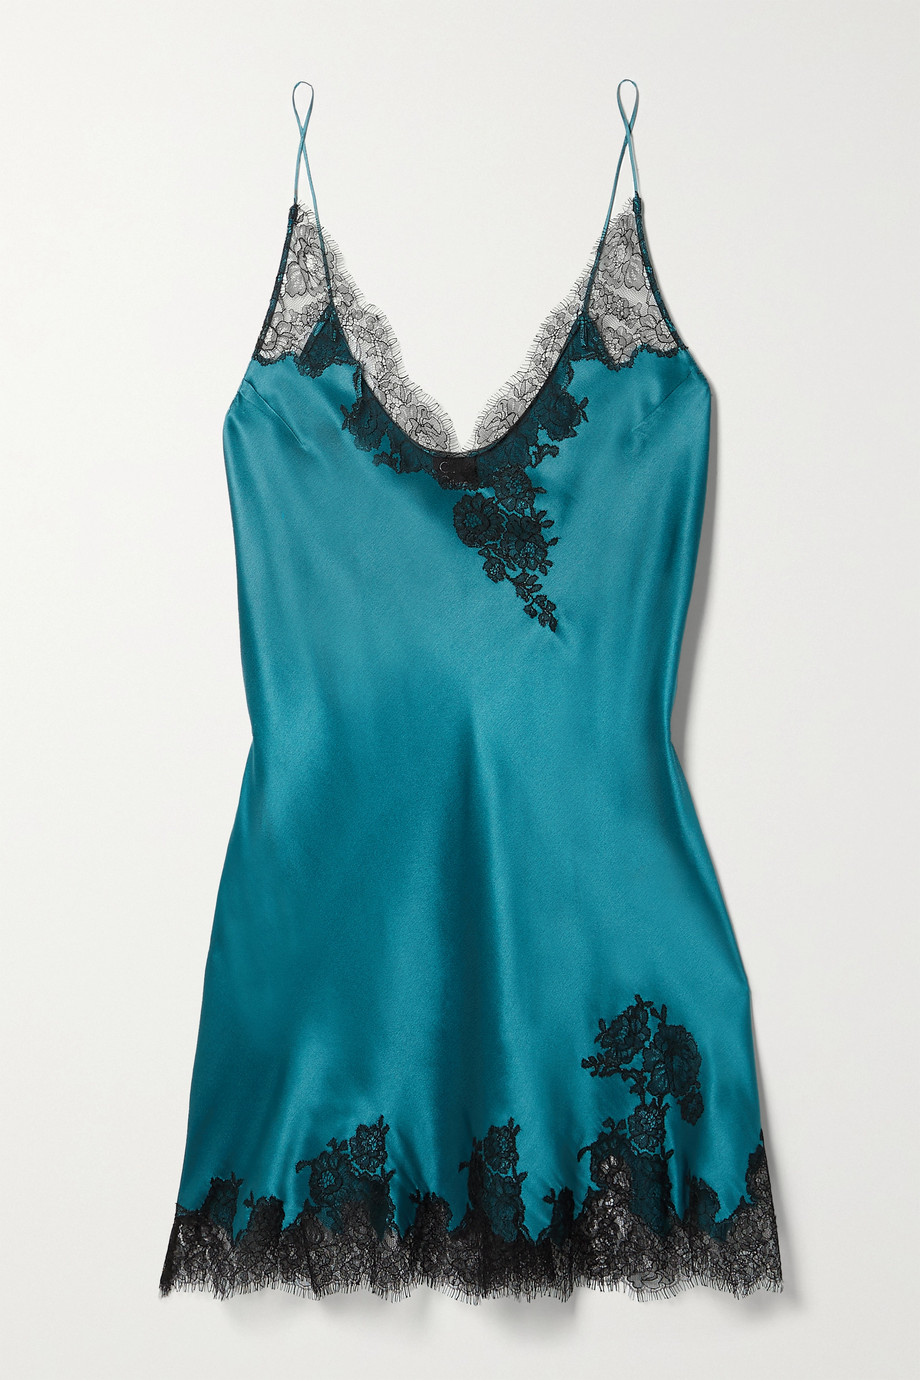 Carine Gilson Silk-satin and Chantilly lace chemise